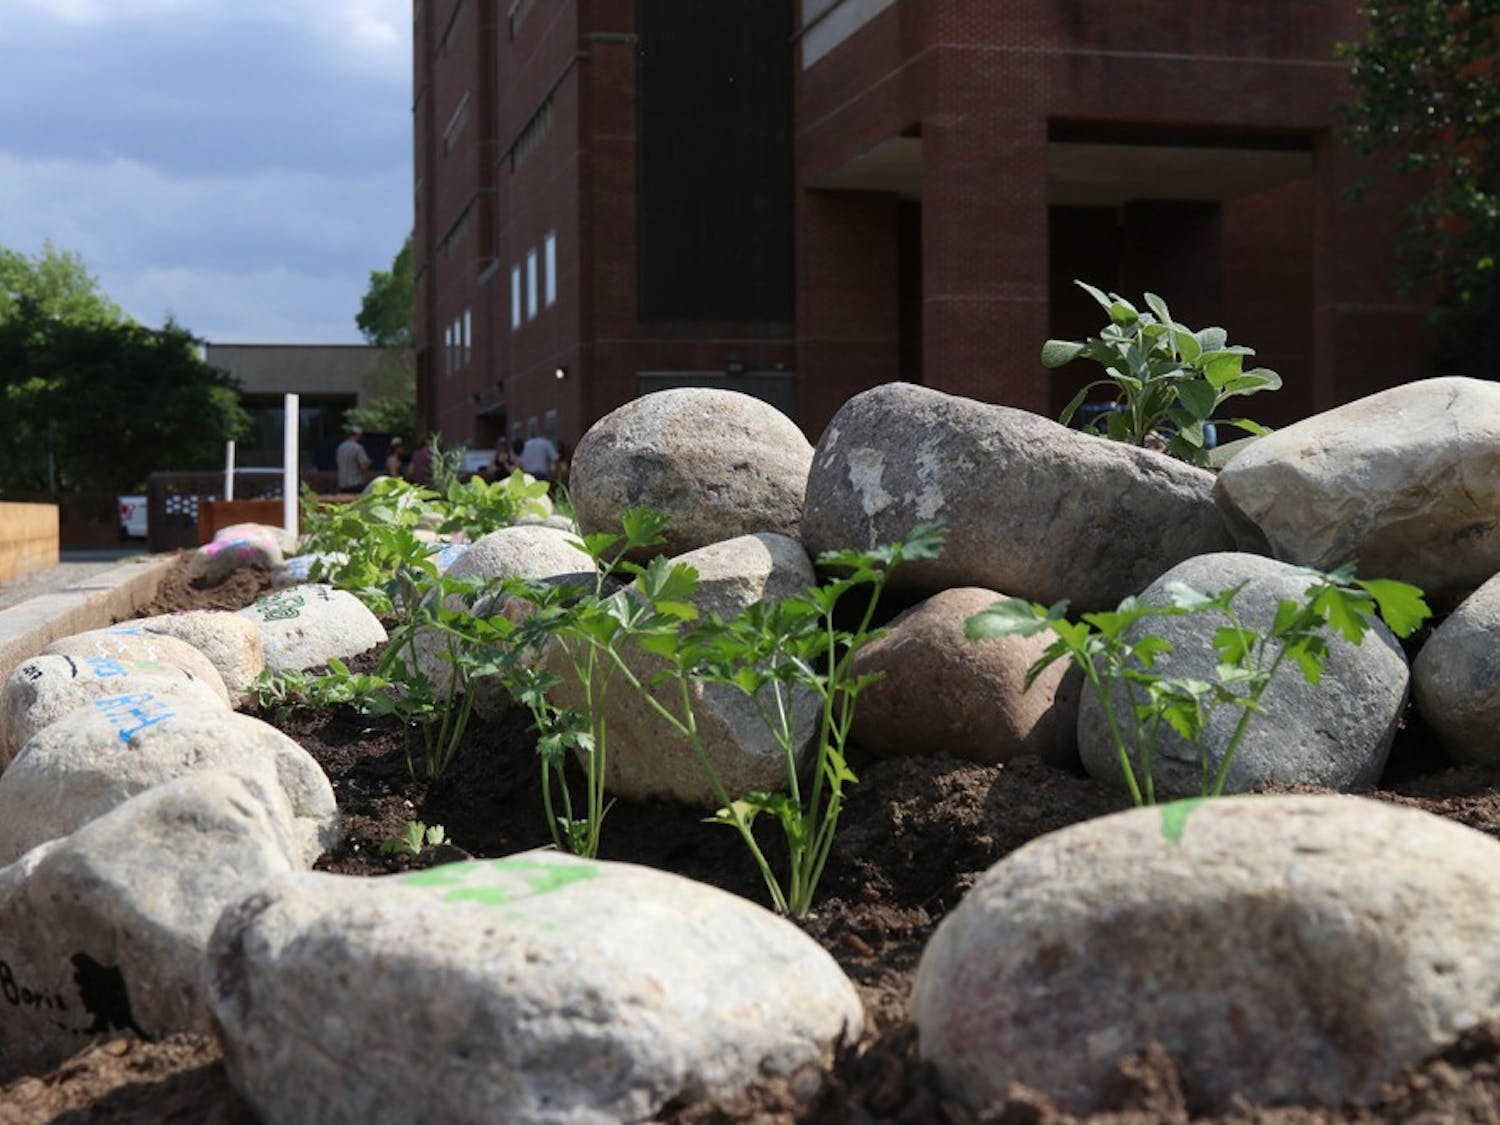 The university celebrated Earth Week with the opening of a new edible campus location and a greenhouse.